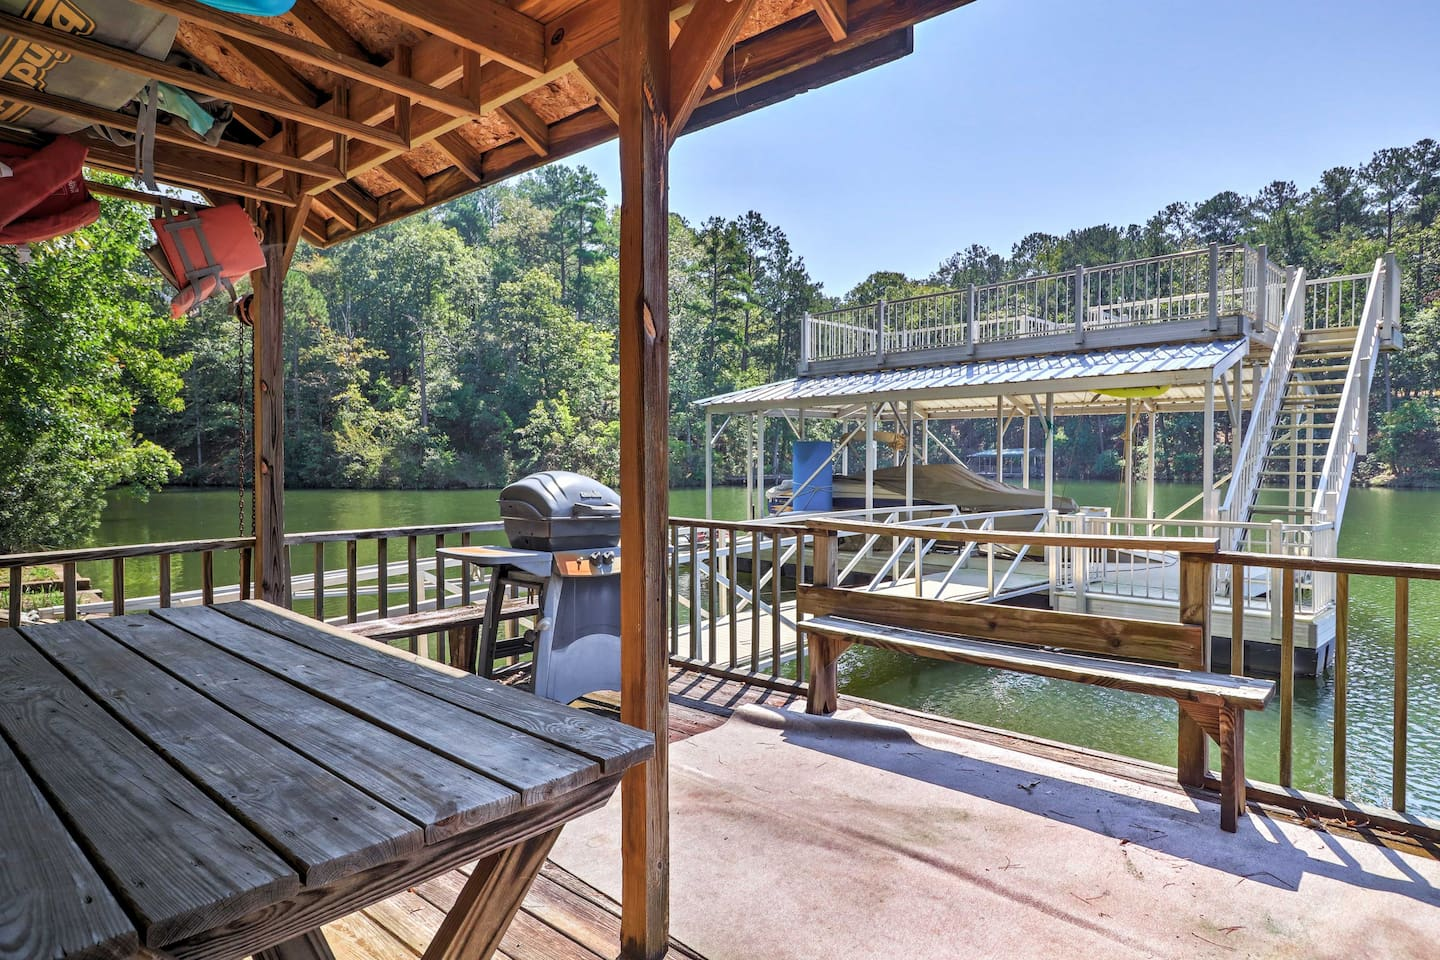 Your water adventures await at this charming 3-bedroom, 2.5-bathroom vacation rental house in Wedowee, Alabama!